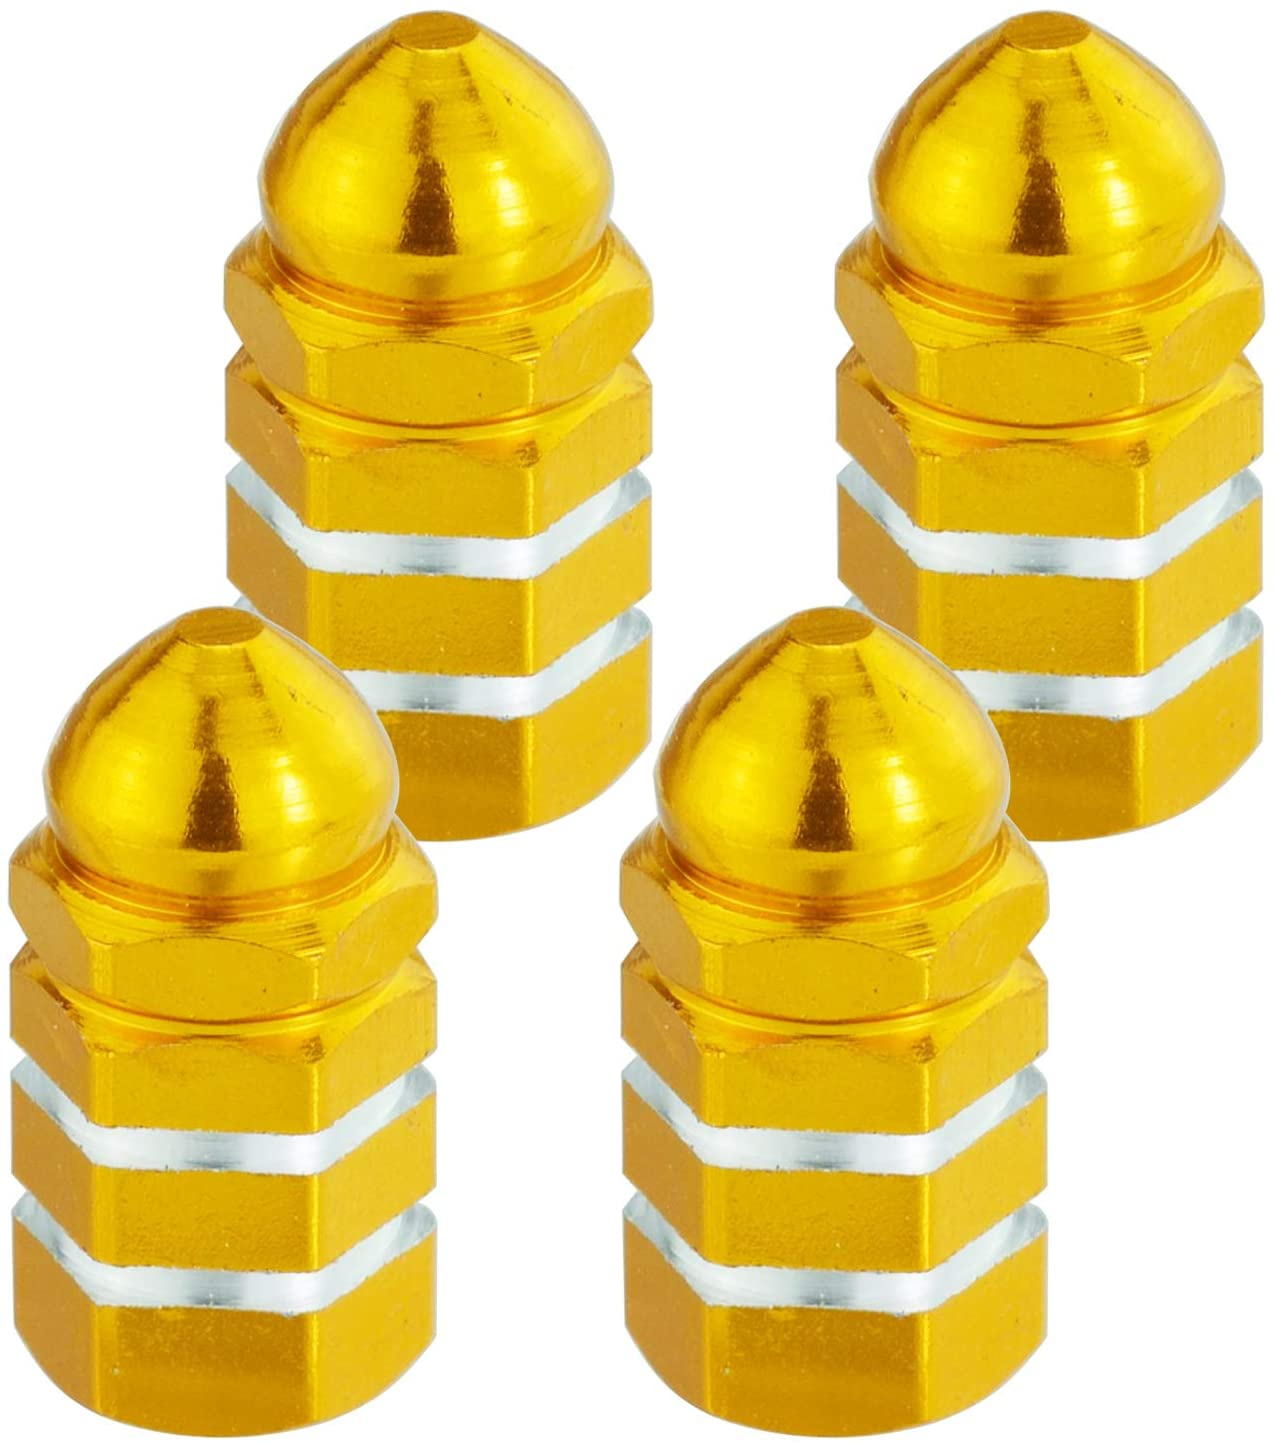 Arenbel Tire Valve Stem Caps of 4 Pack, Alloy Aluminum Metal Rubber Seal Tire Valve Stem Caps, Dust Proof Covers Universal fit for Car, SUV, Bike and Bicycle, (Gold)